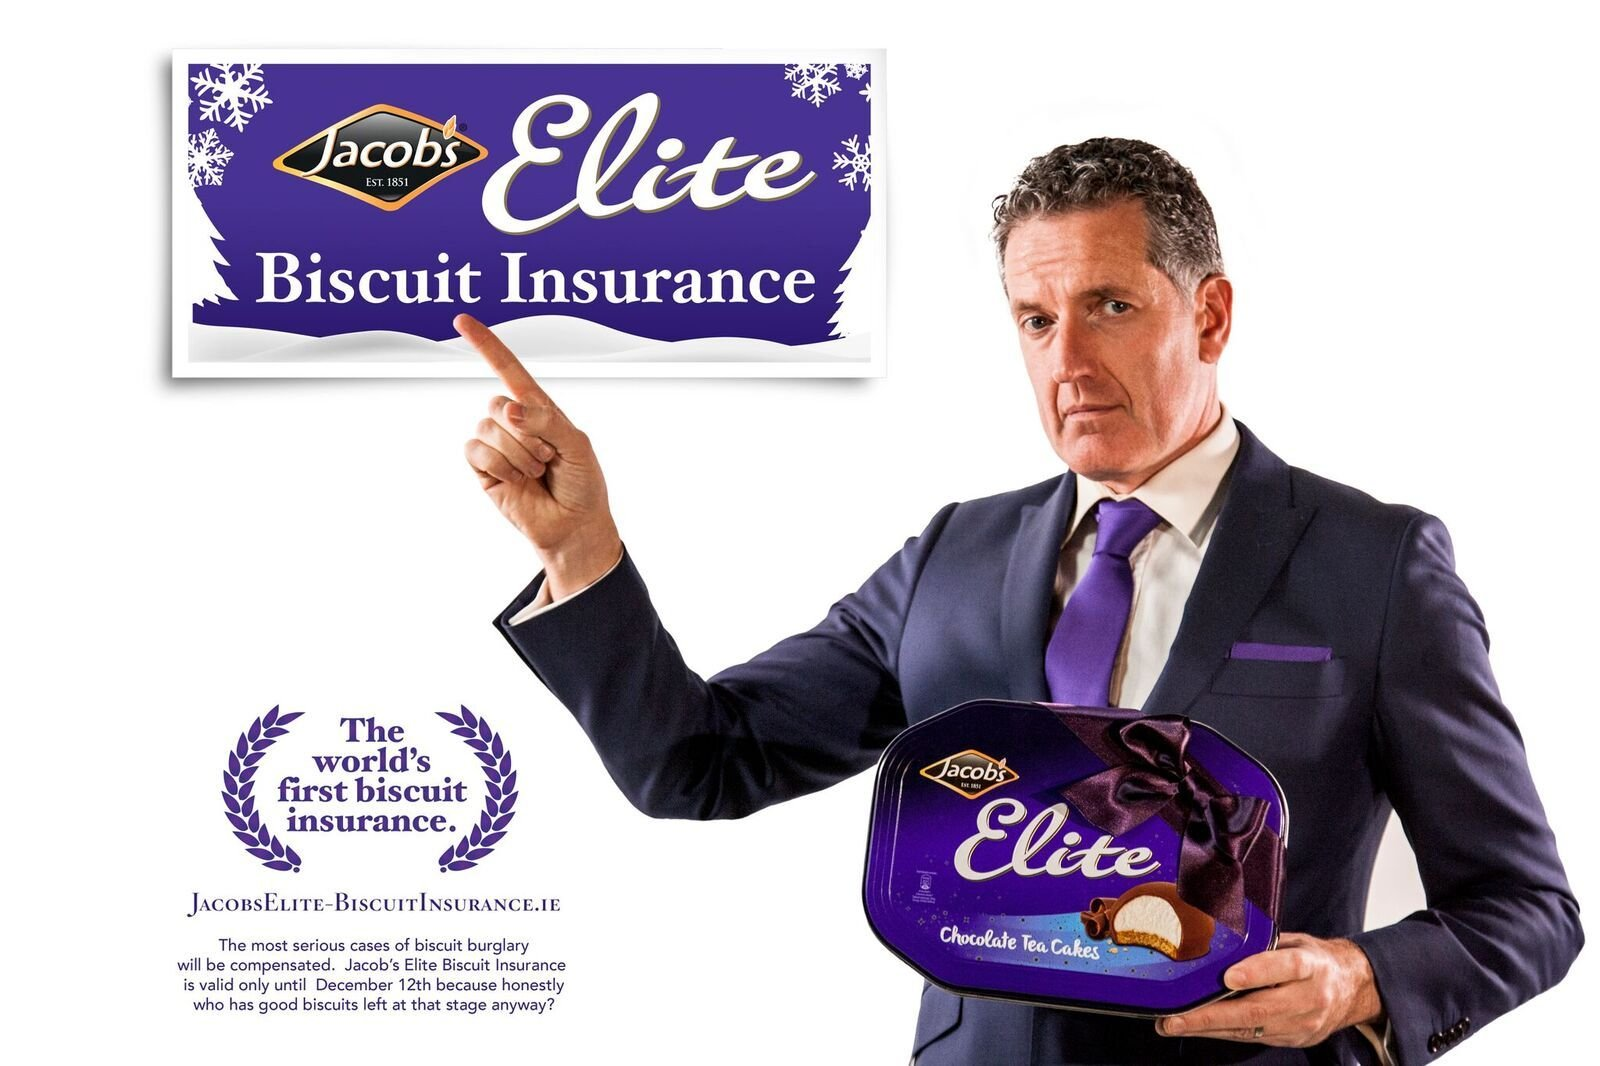 Jacobs biscuit insurance